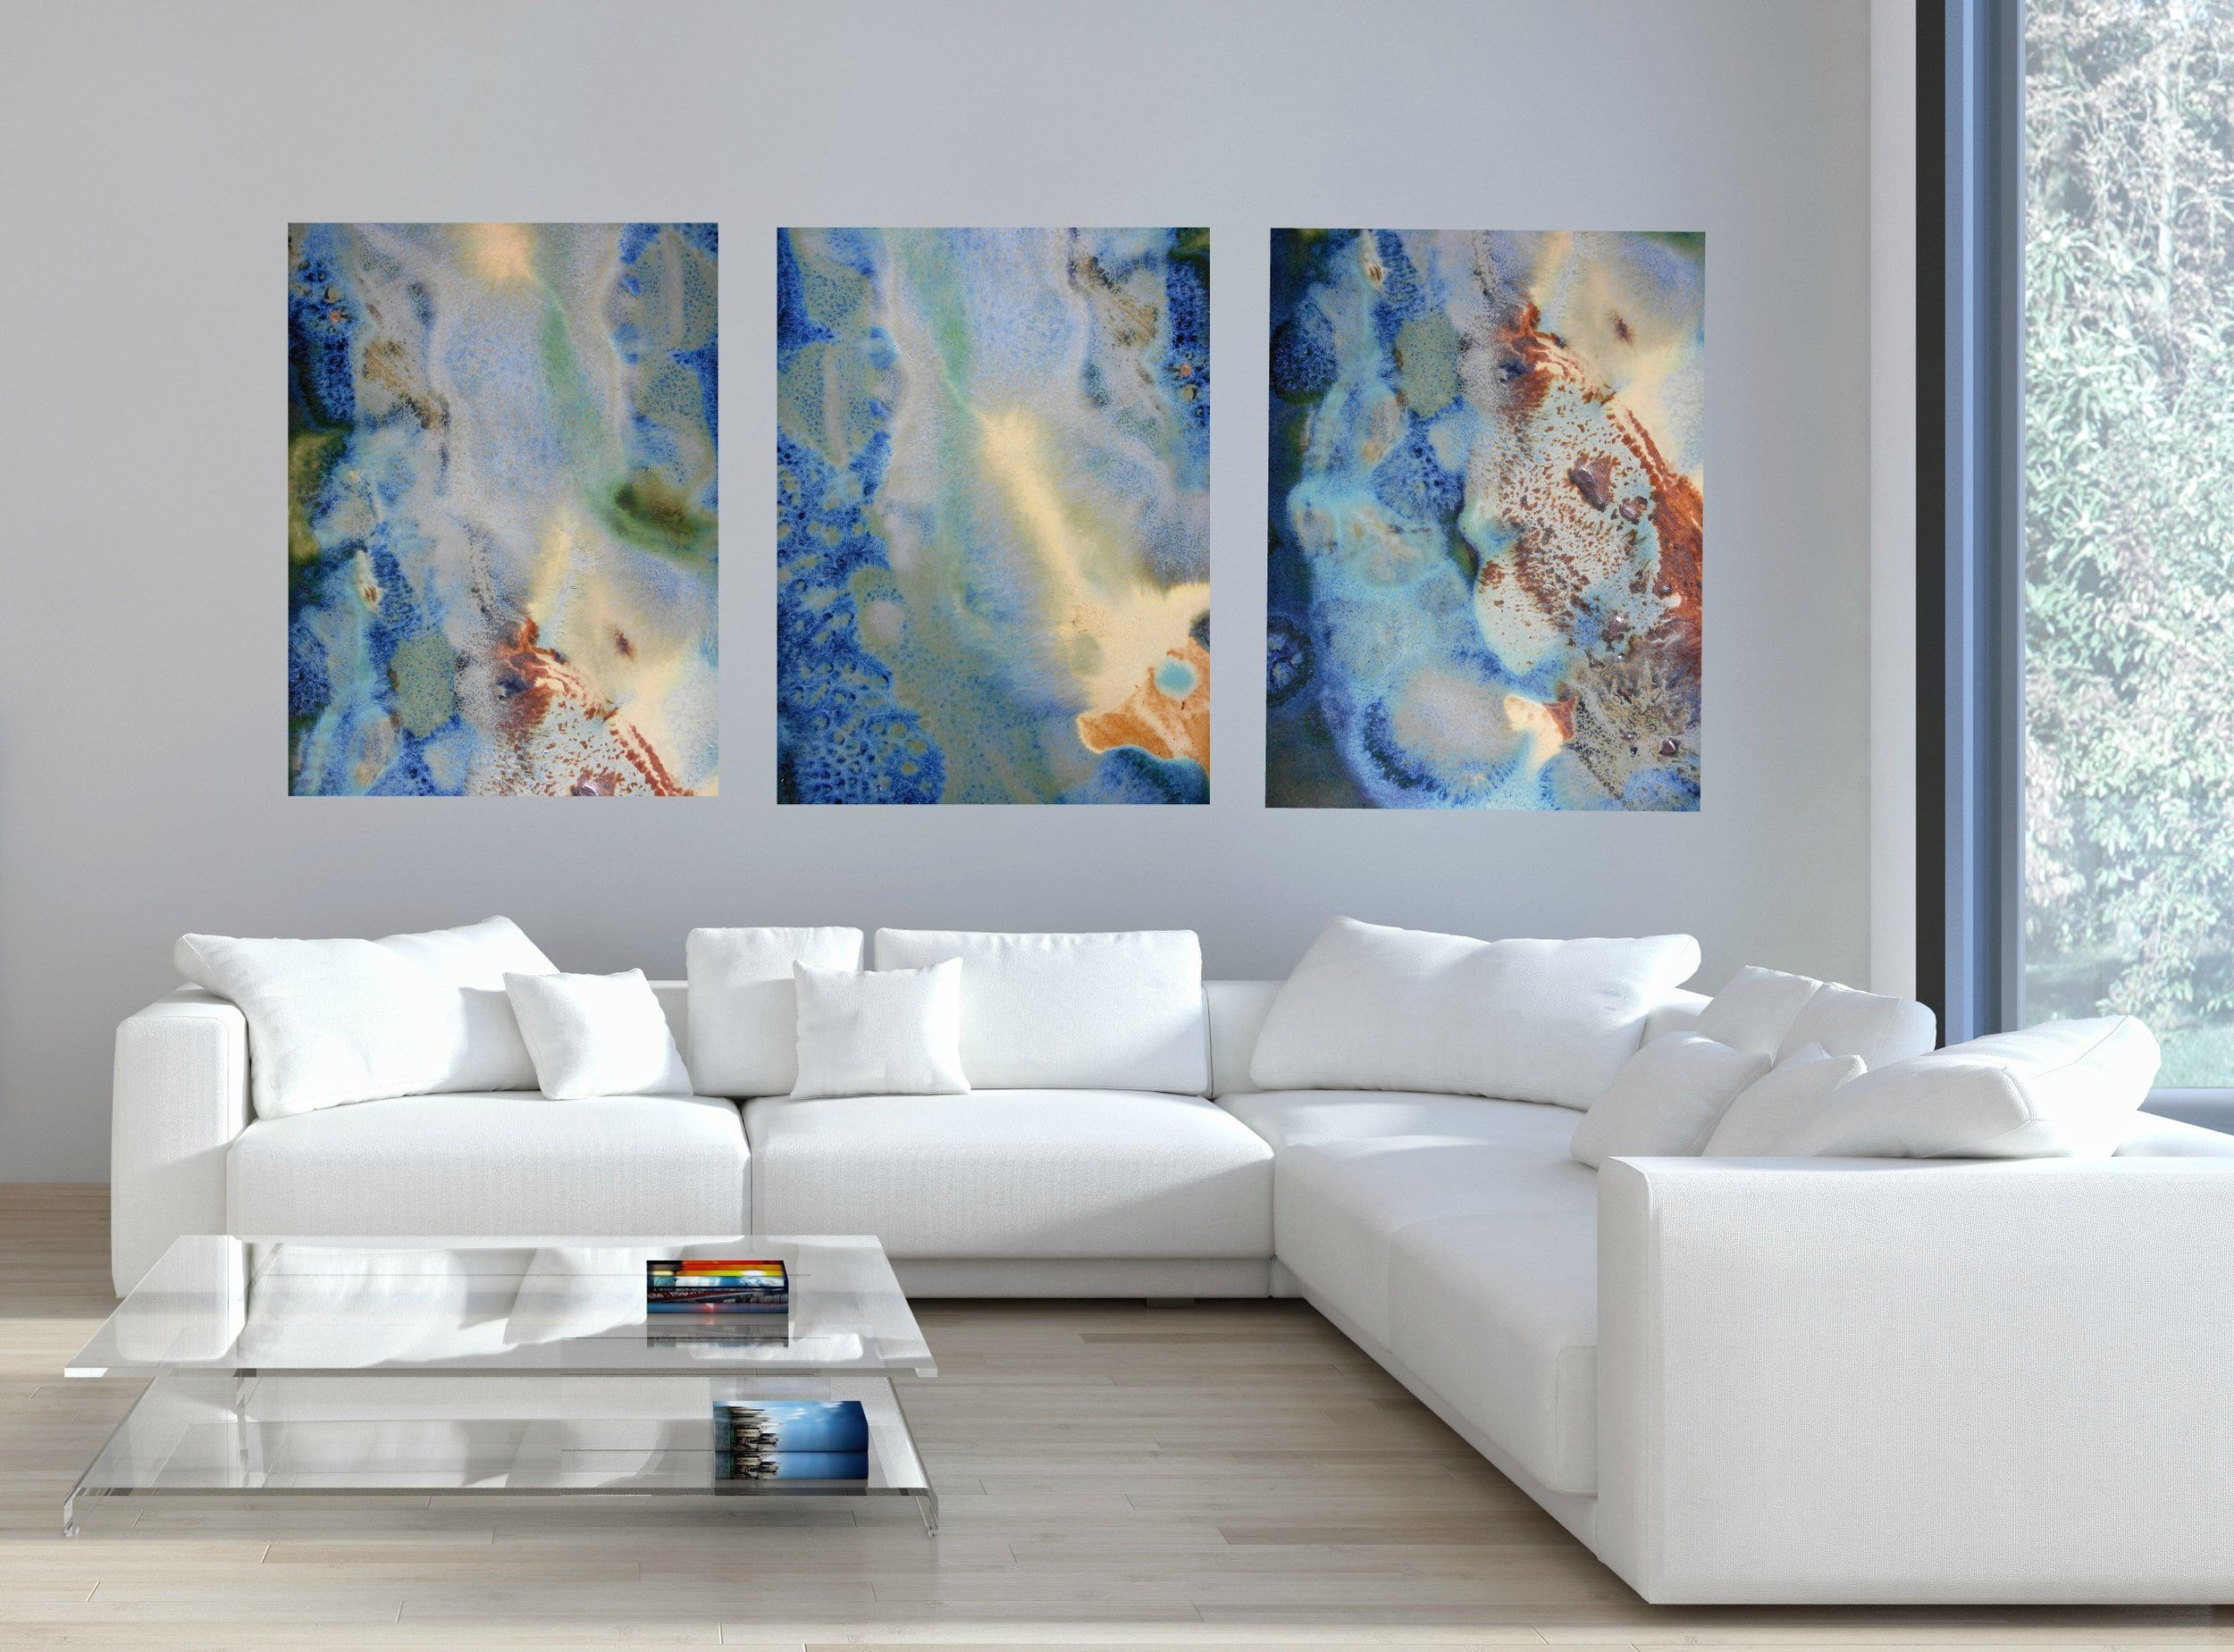 Large Canvas Prints For Living Room Set Of 3 Rectangular Green Blue And Yellow Abstract Canvas